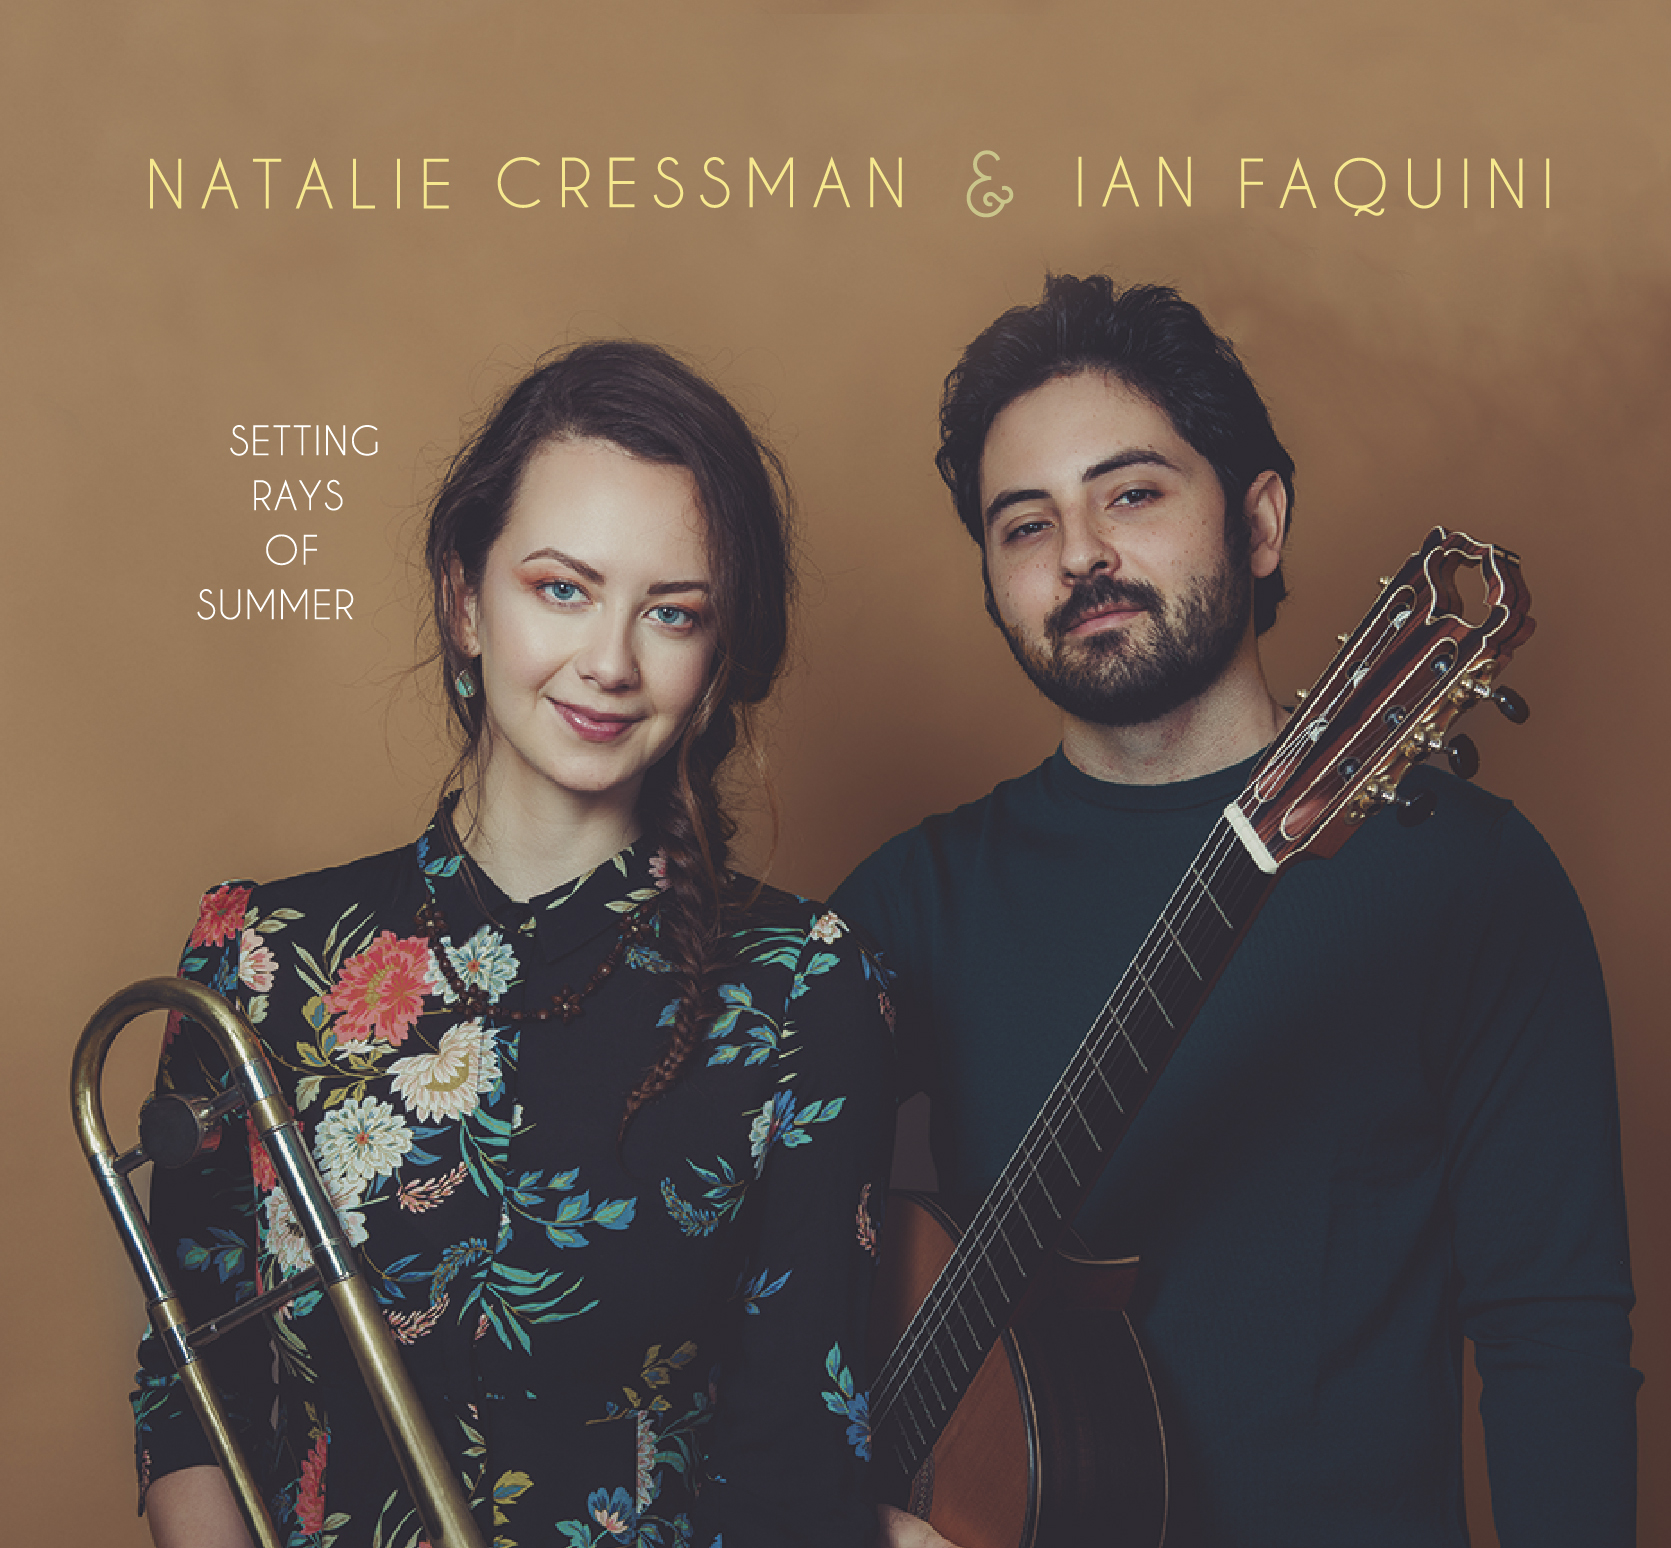 BEST OF 2019: Natalie Cressman and Ian Faquini's SETTING RAYS OF SUMMER – Mercury News